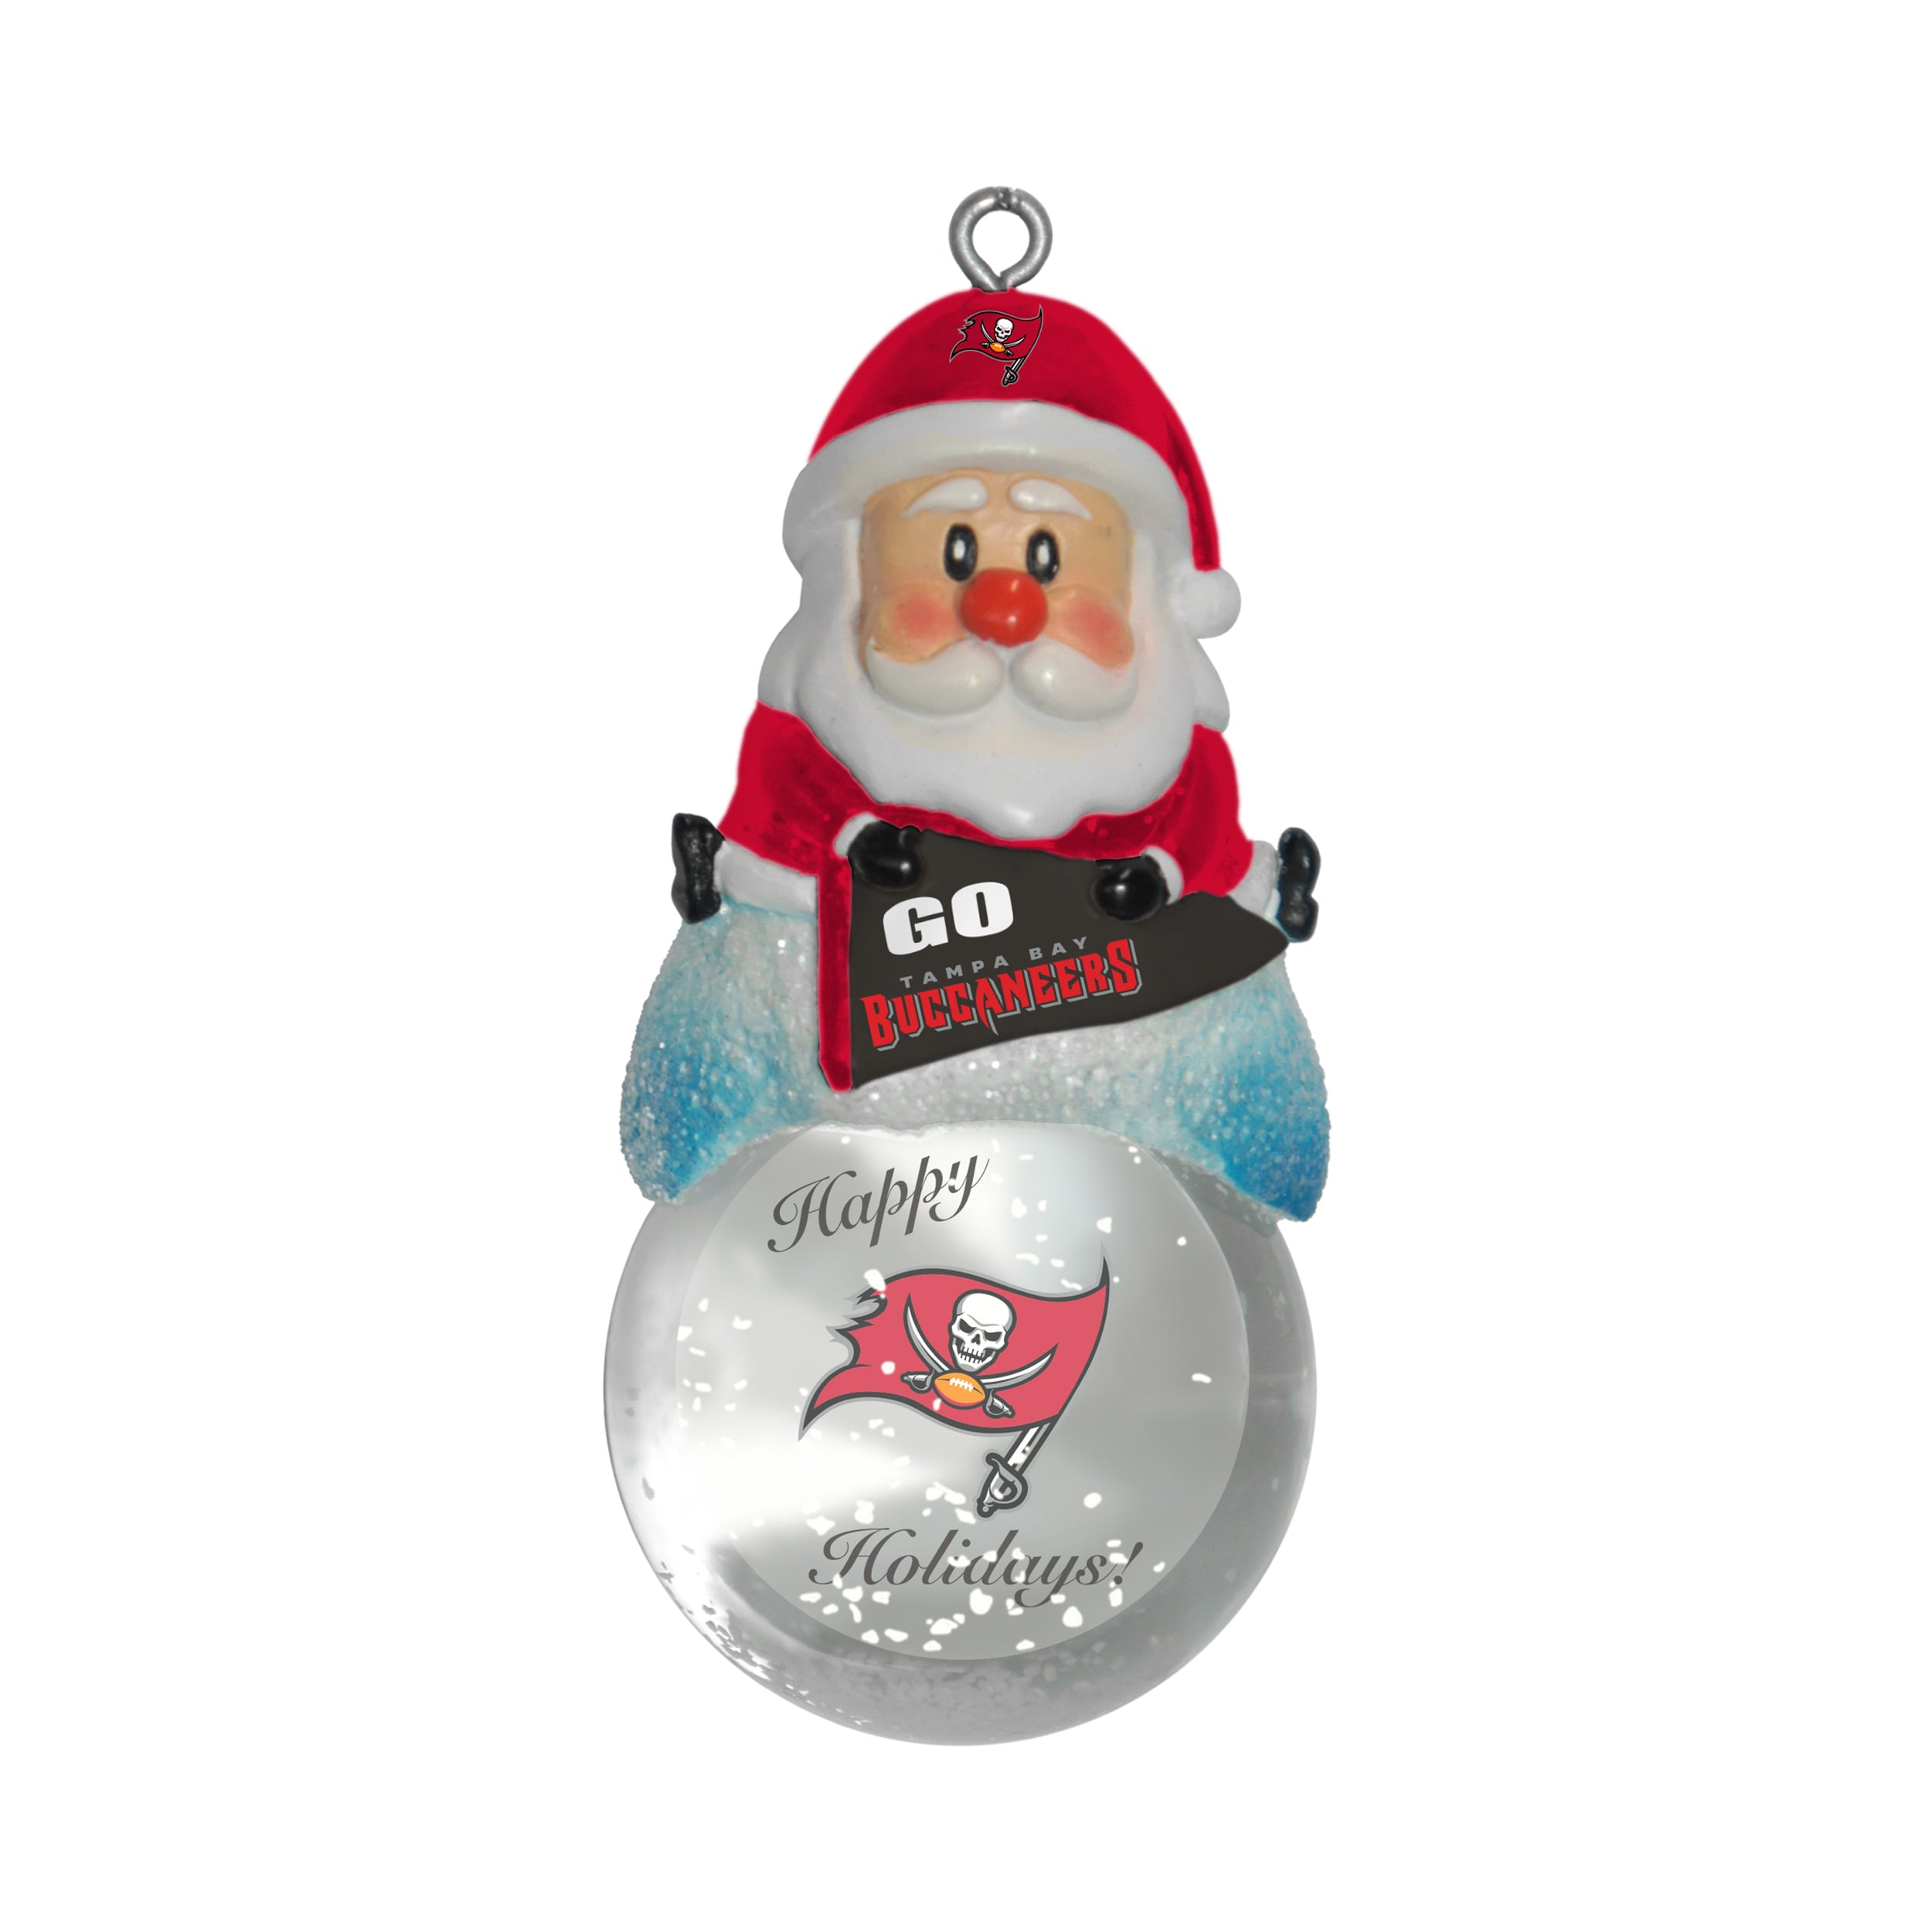 a292284a6db Shop Tampa Bay Buccaneers Santa Snow Globe Ornament - Free Shipping On  Orders Over  45 - Overstock - 10857563